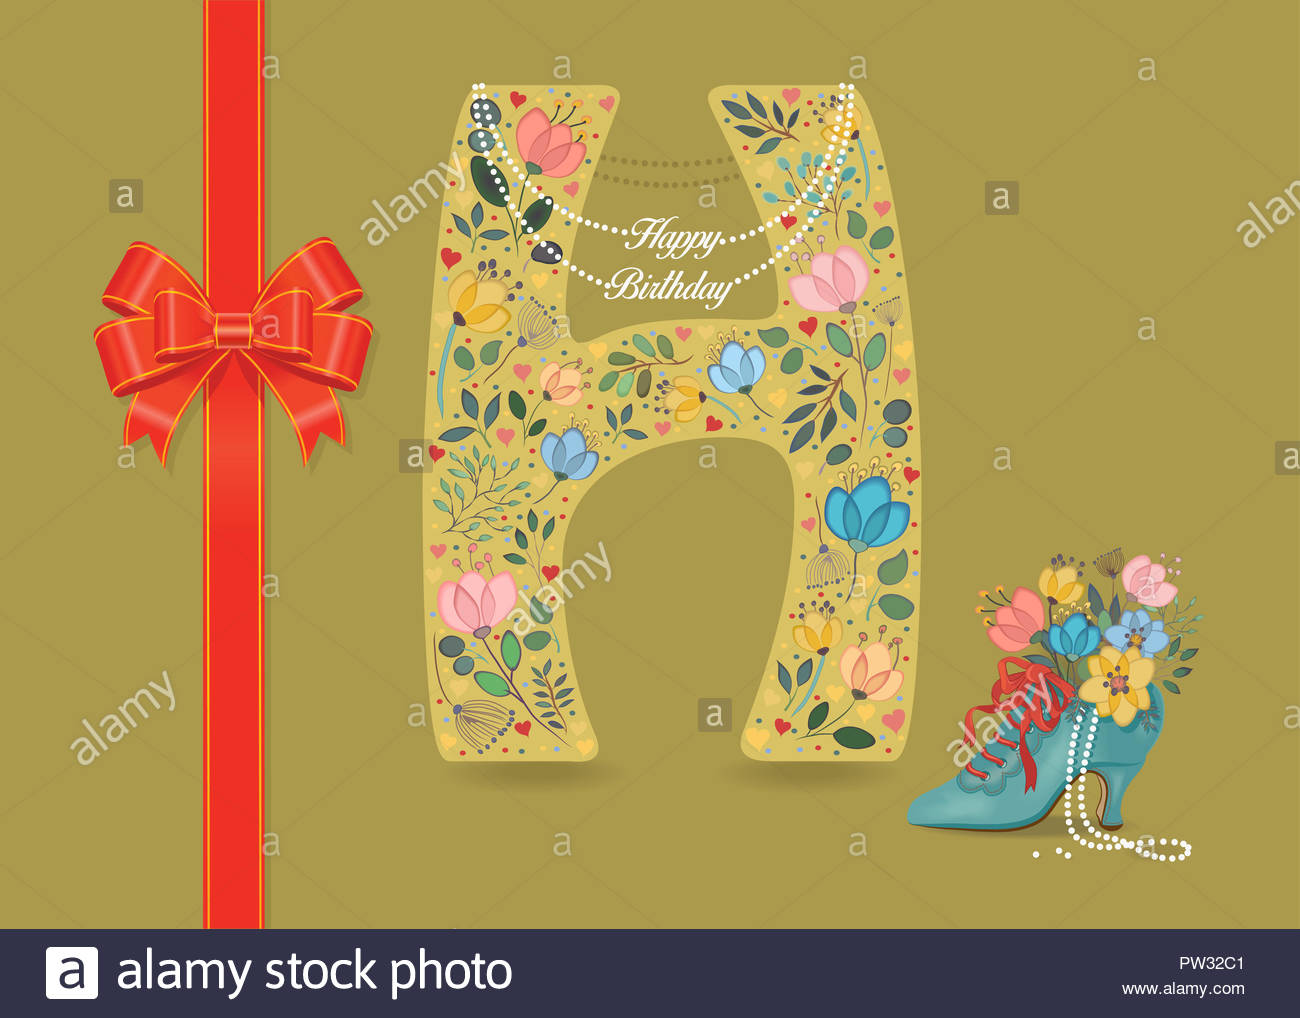 f4957c8168b0b Artistic letter H with folk botanical decor - watercolor flowers and  hearts. Big red bow. Retro blue shoe with pearls and floral bouquet. Pearl  Collar